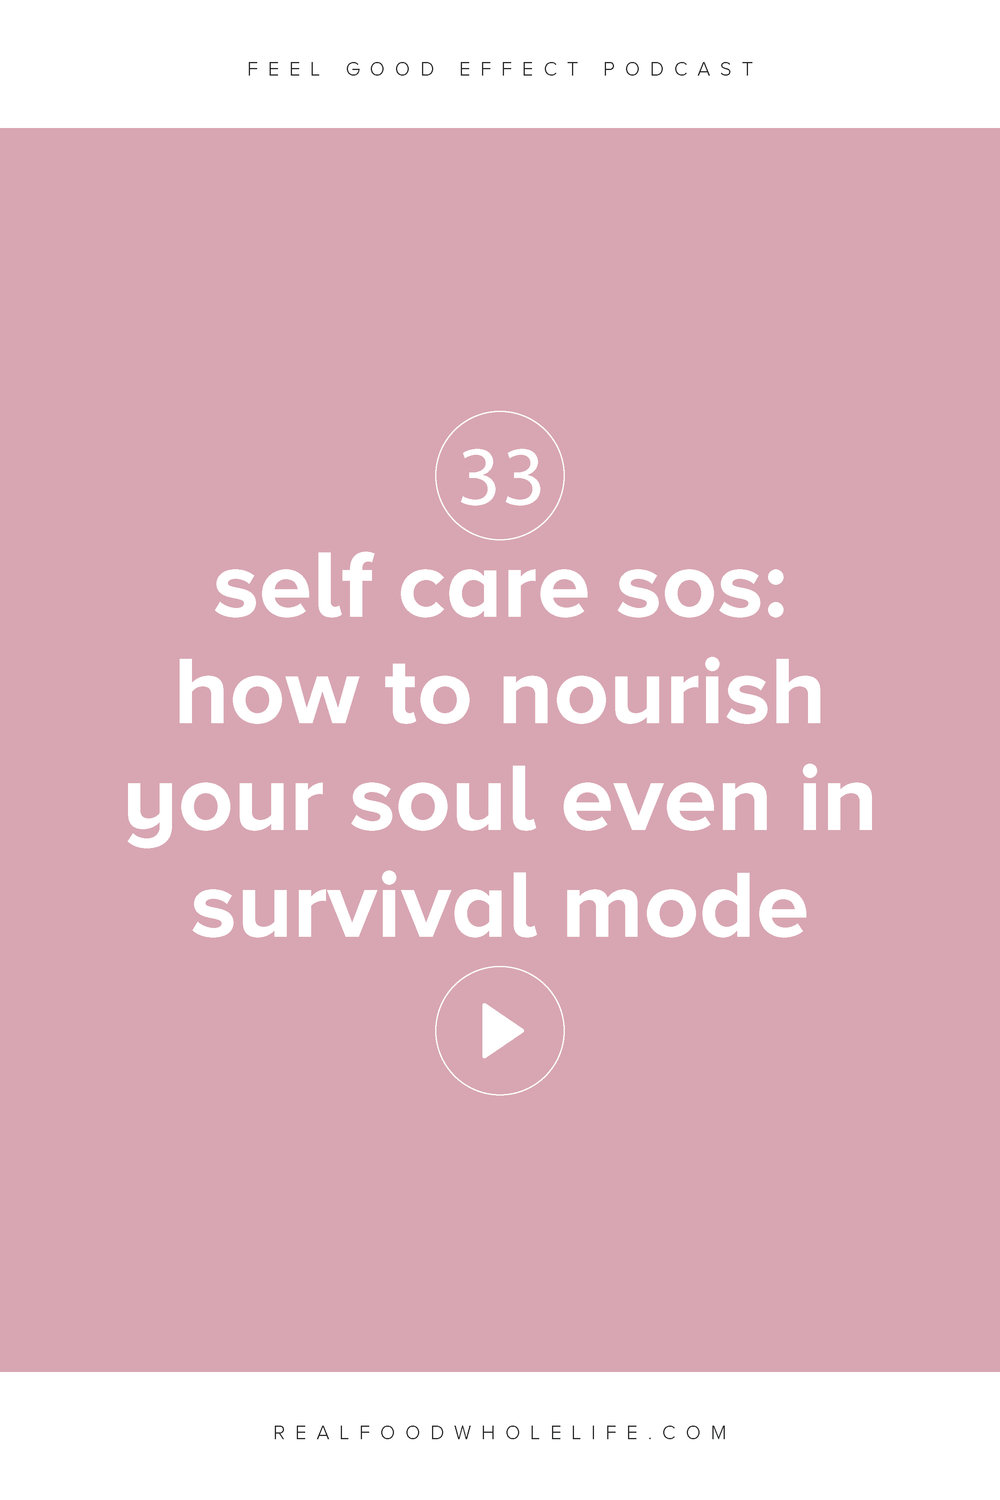 self care sos: how to nourish your soul even in survival mode